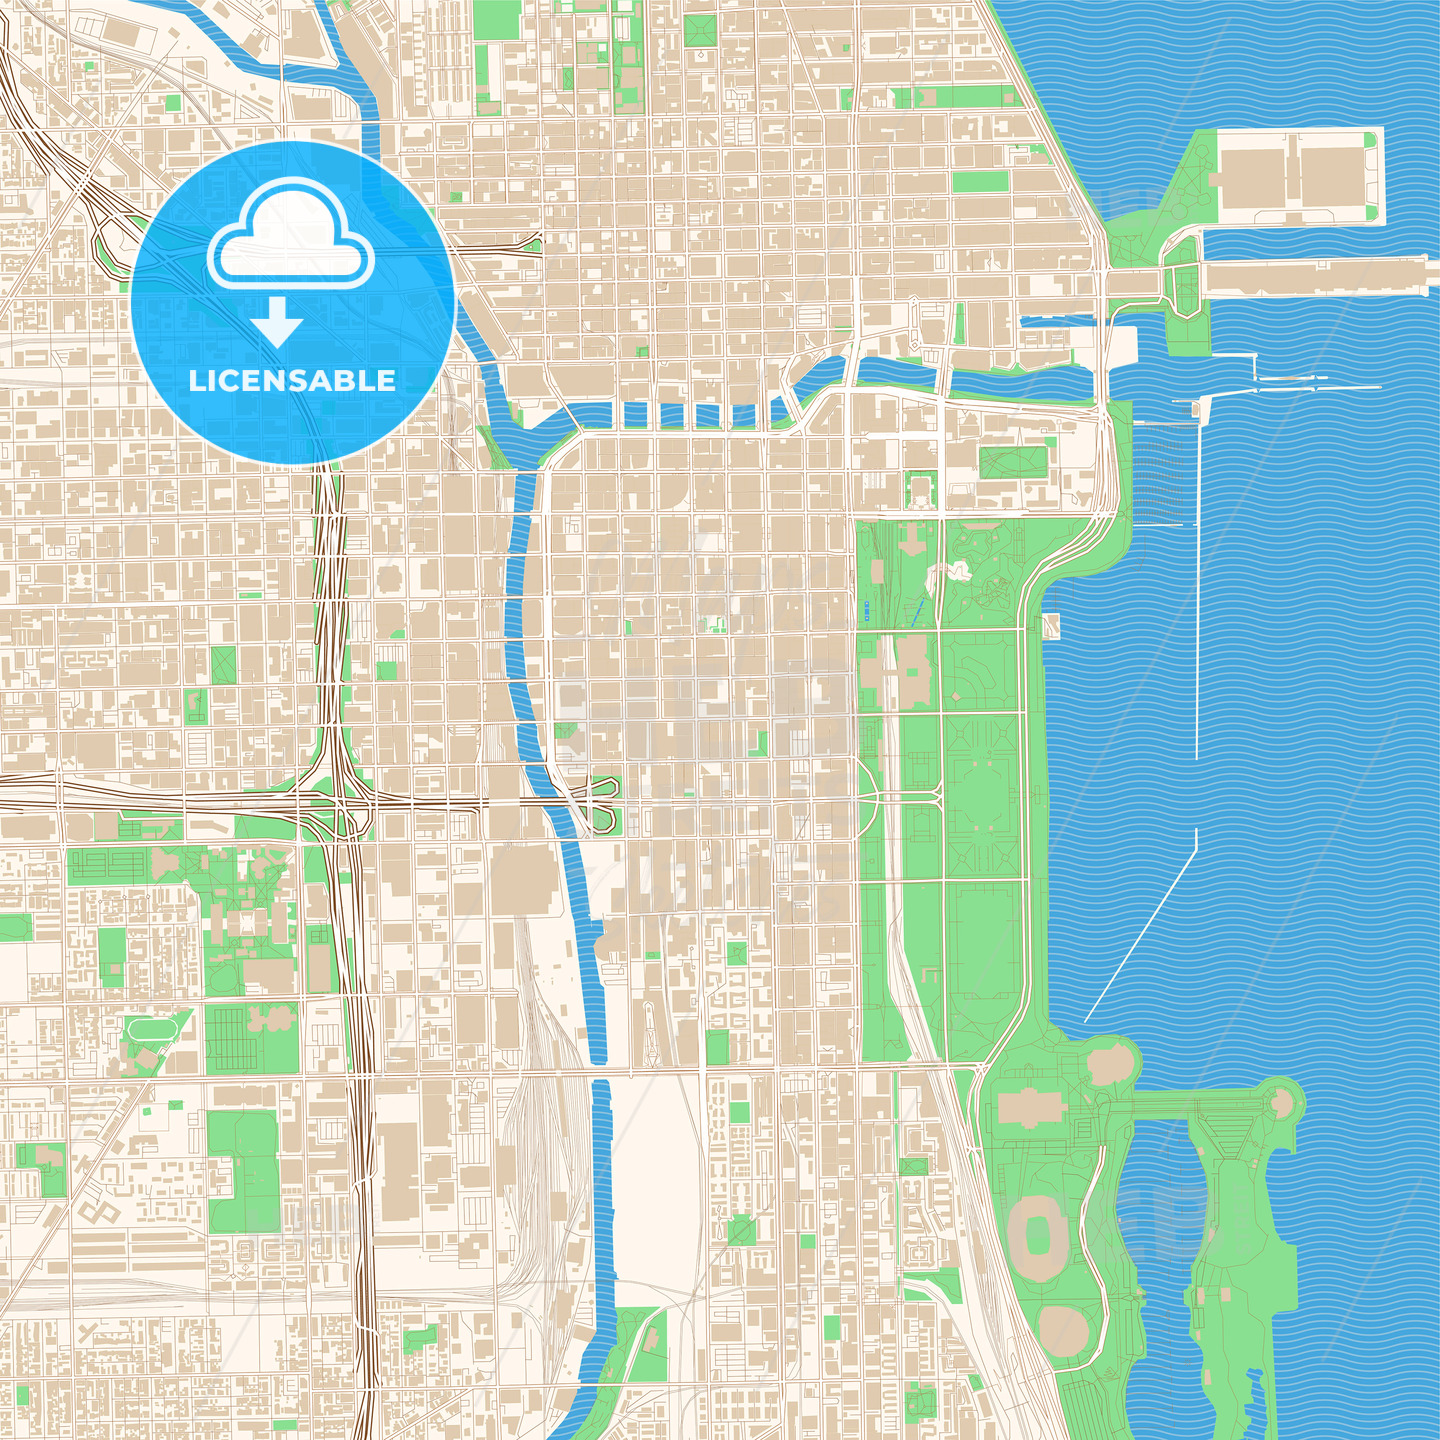 Street map of downtown Chicago, Illinois